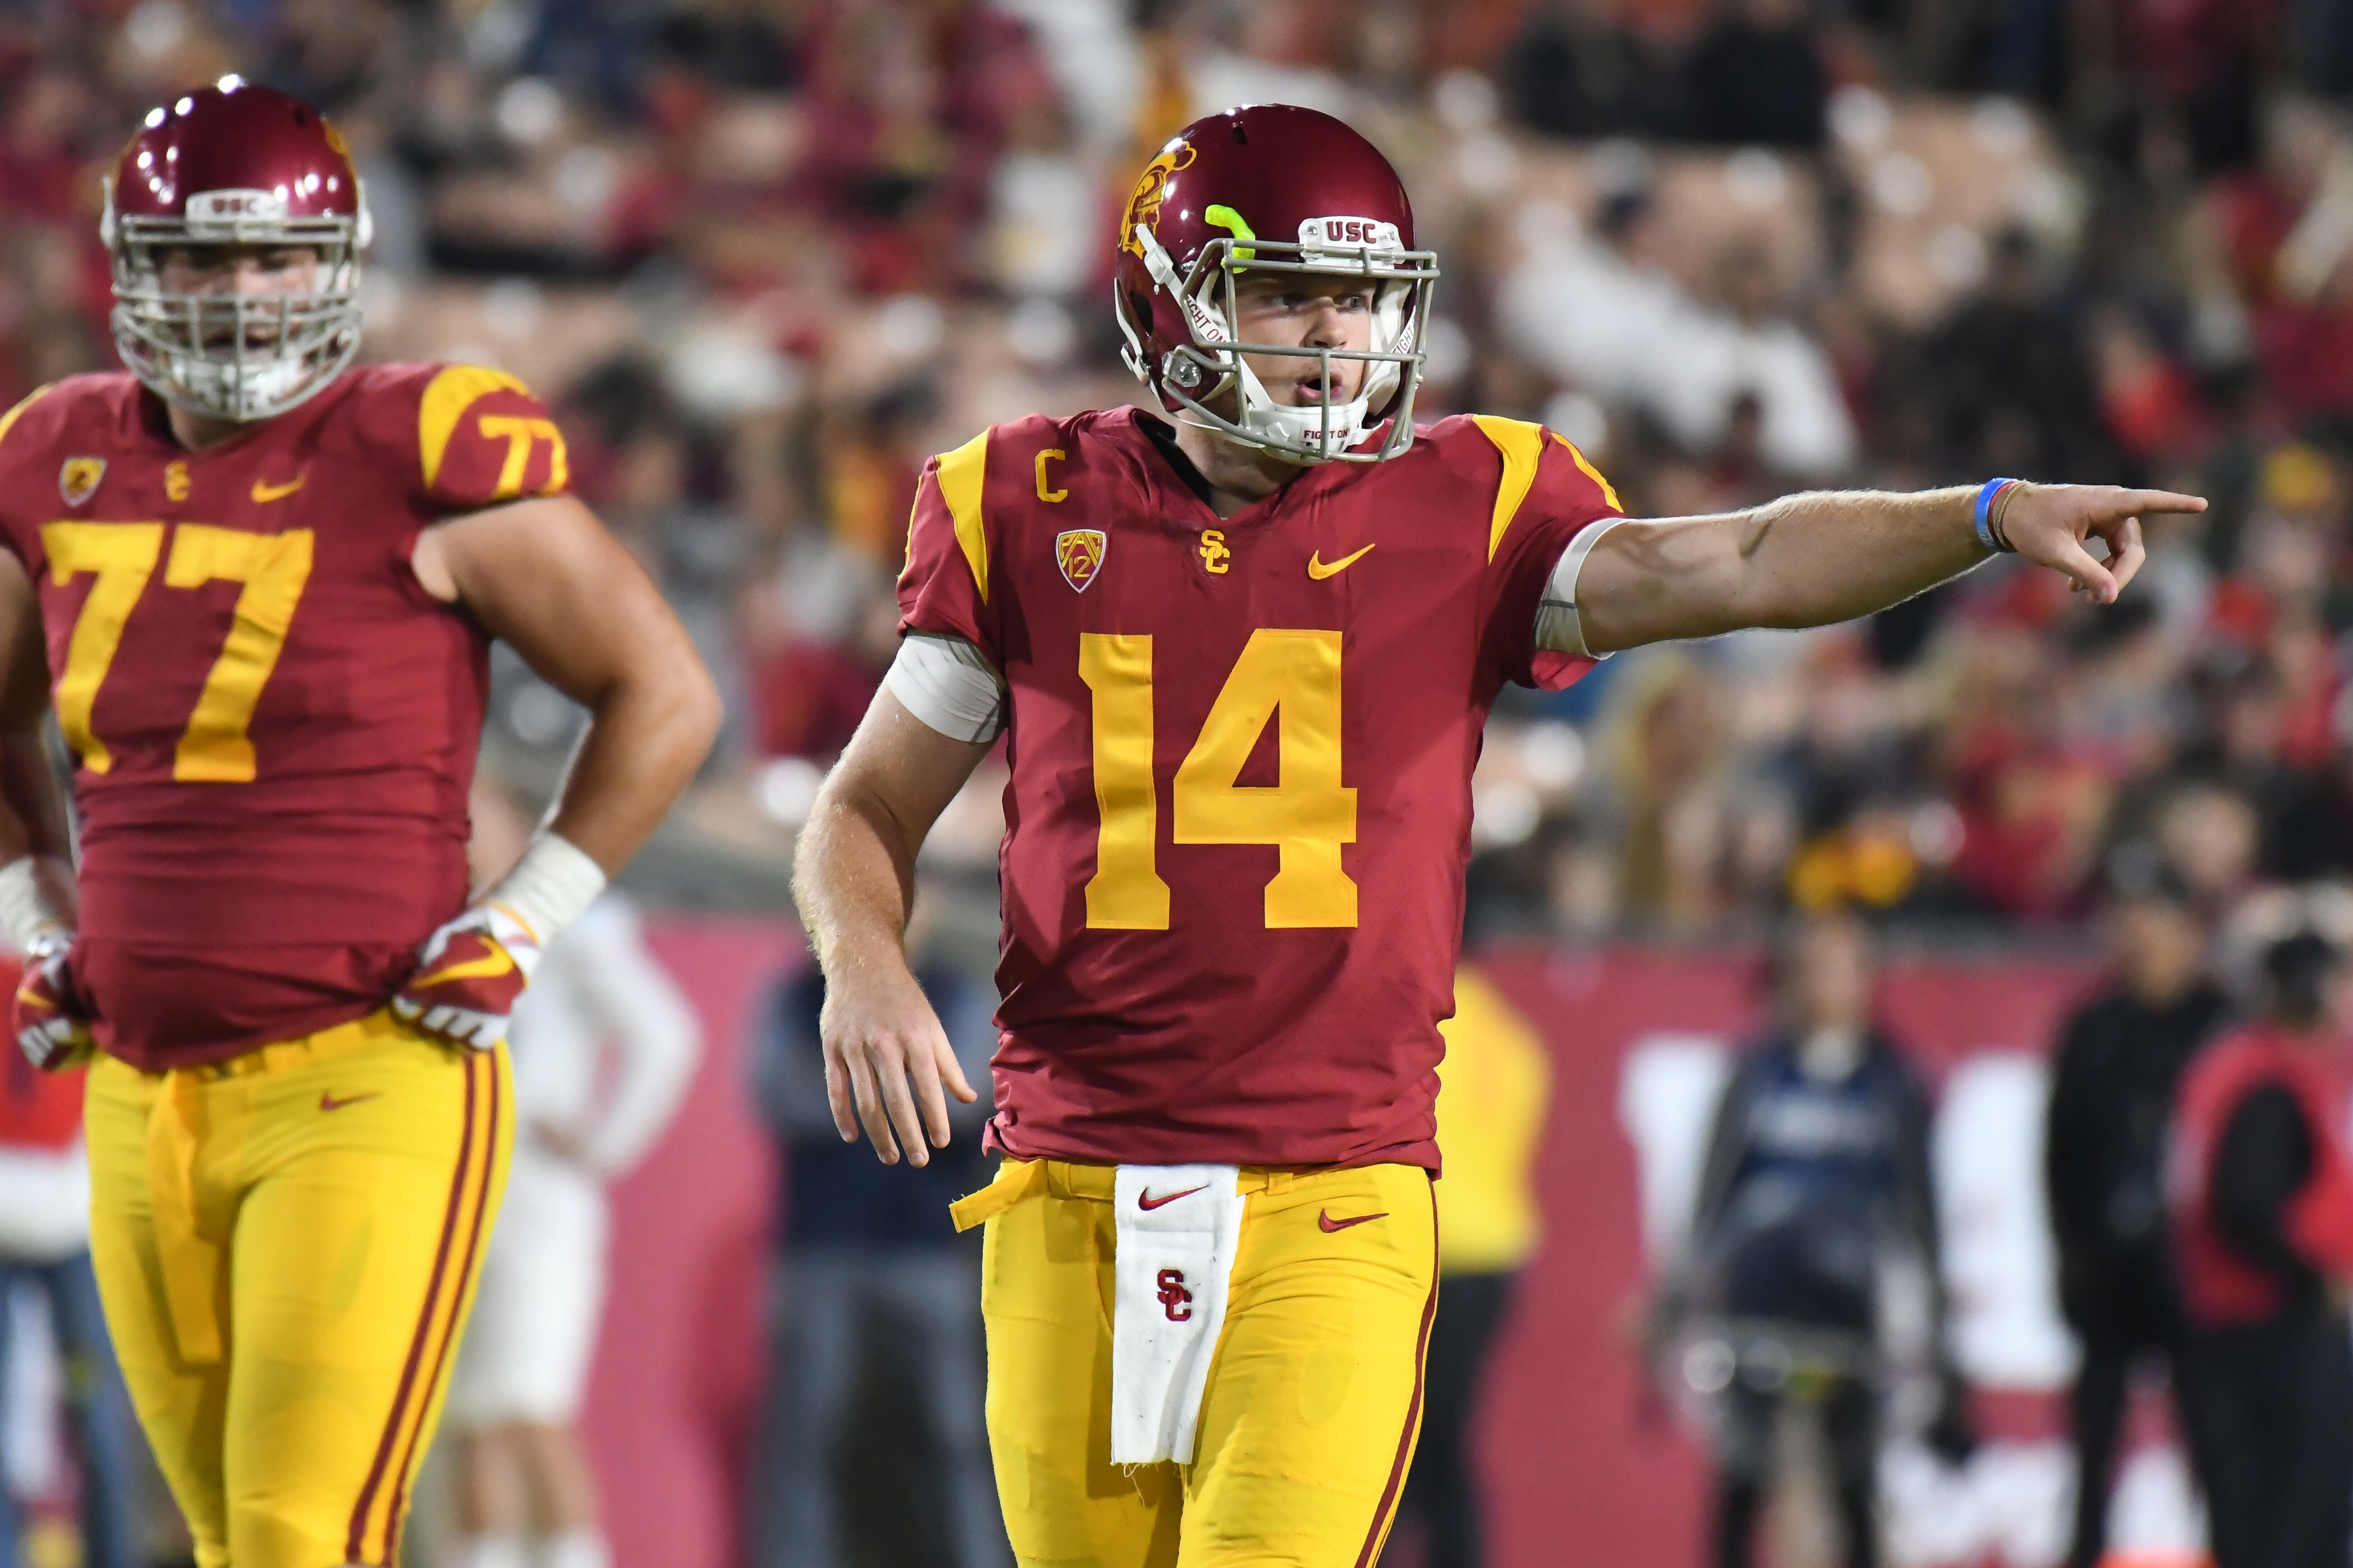 Usc Vs Ucla Live Stream How You Can Watch The Game Online